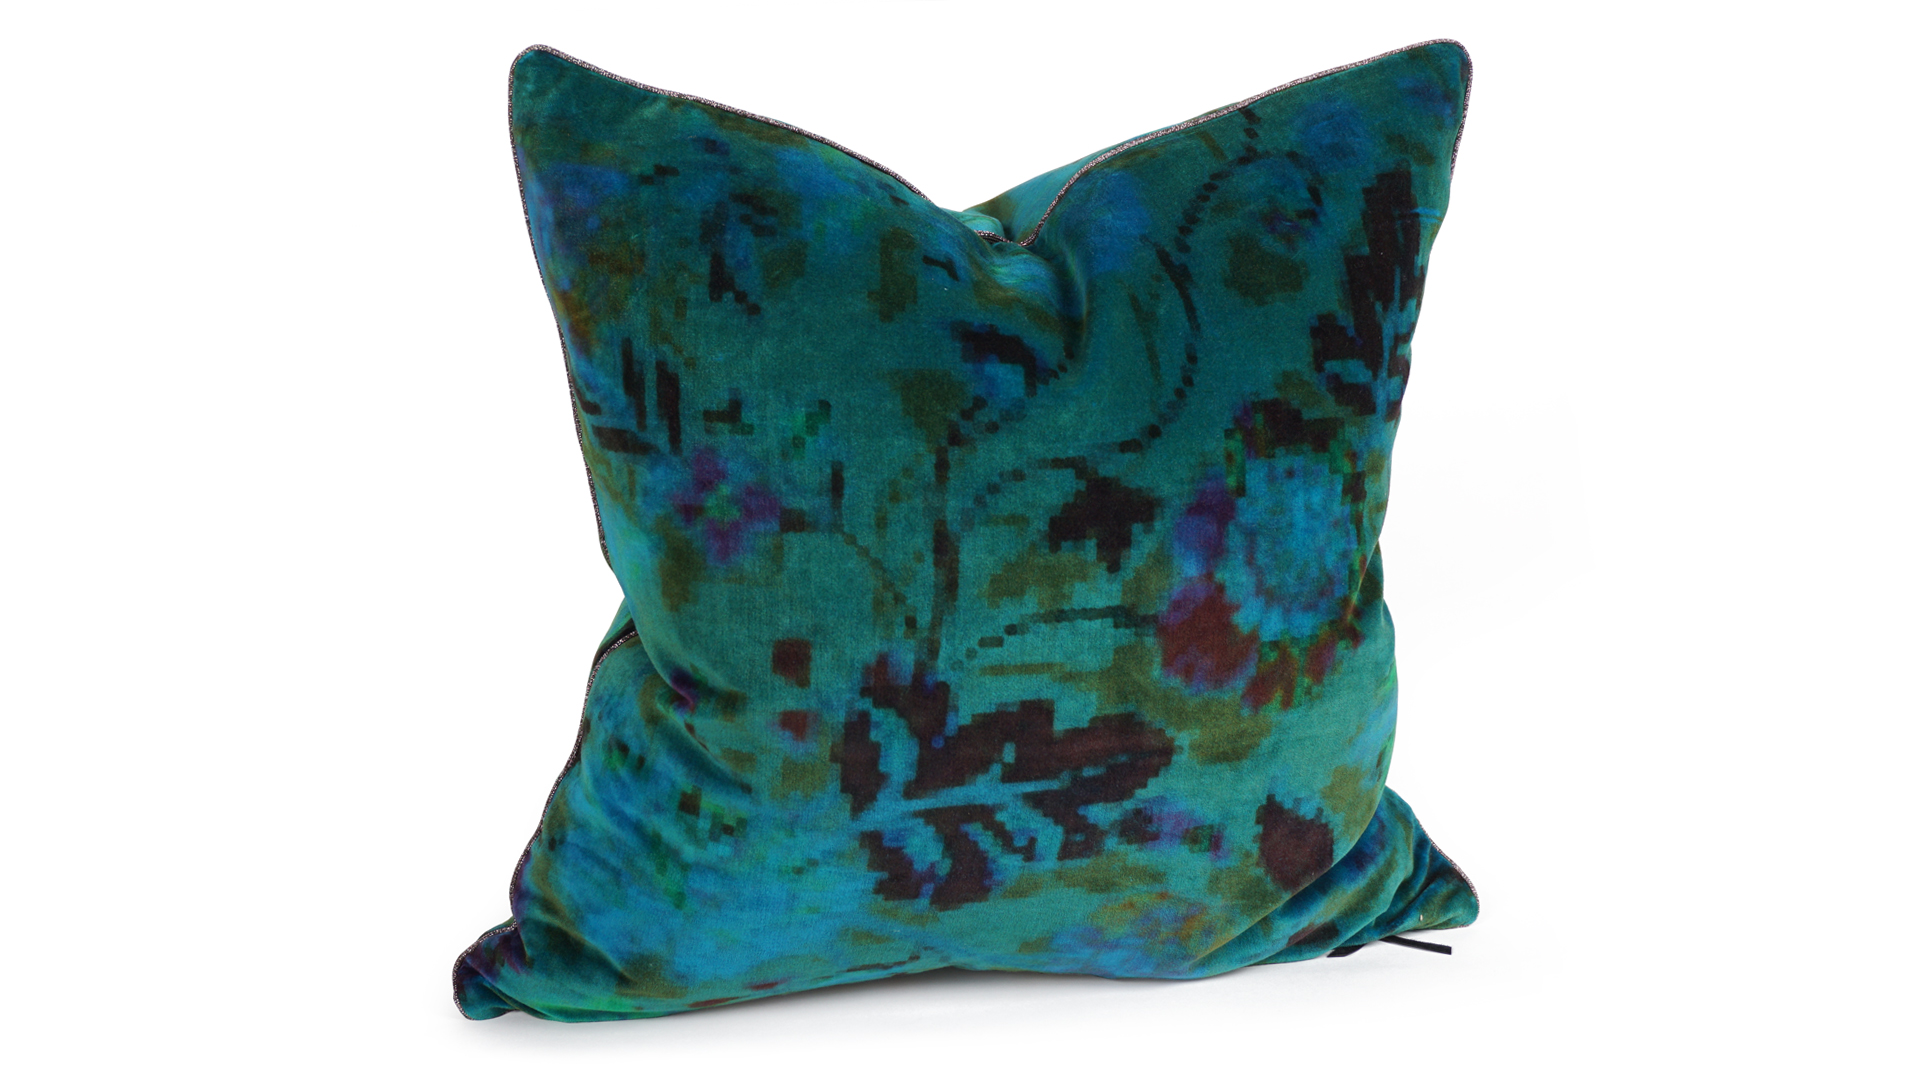 Blue Velvet Cushion Midnight Blue Velvet Cushion Un Fauteuil Pour Deux